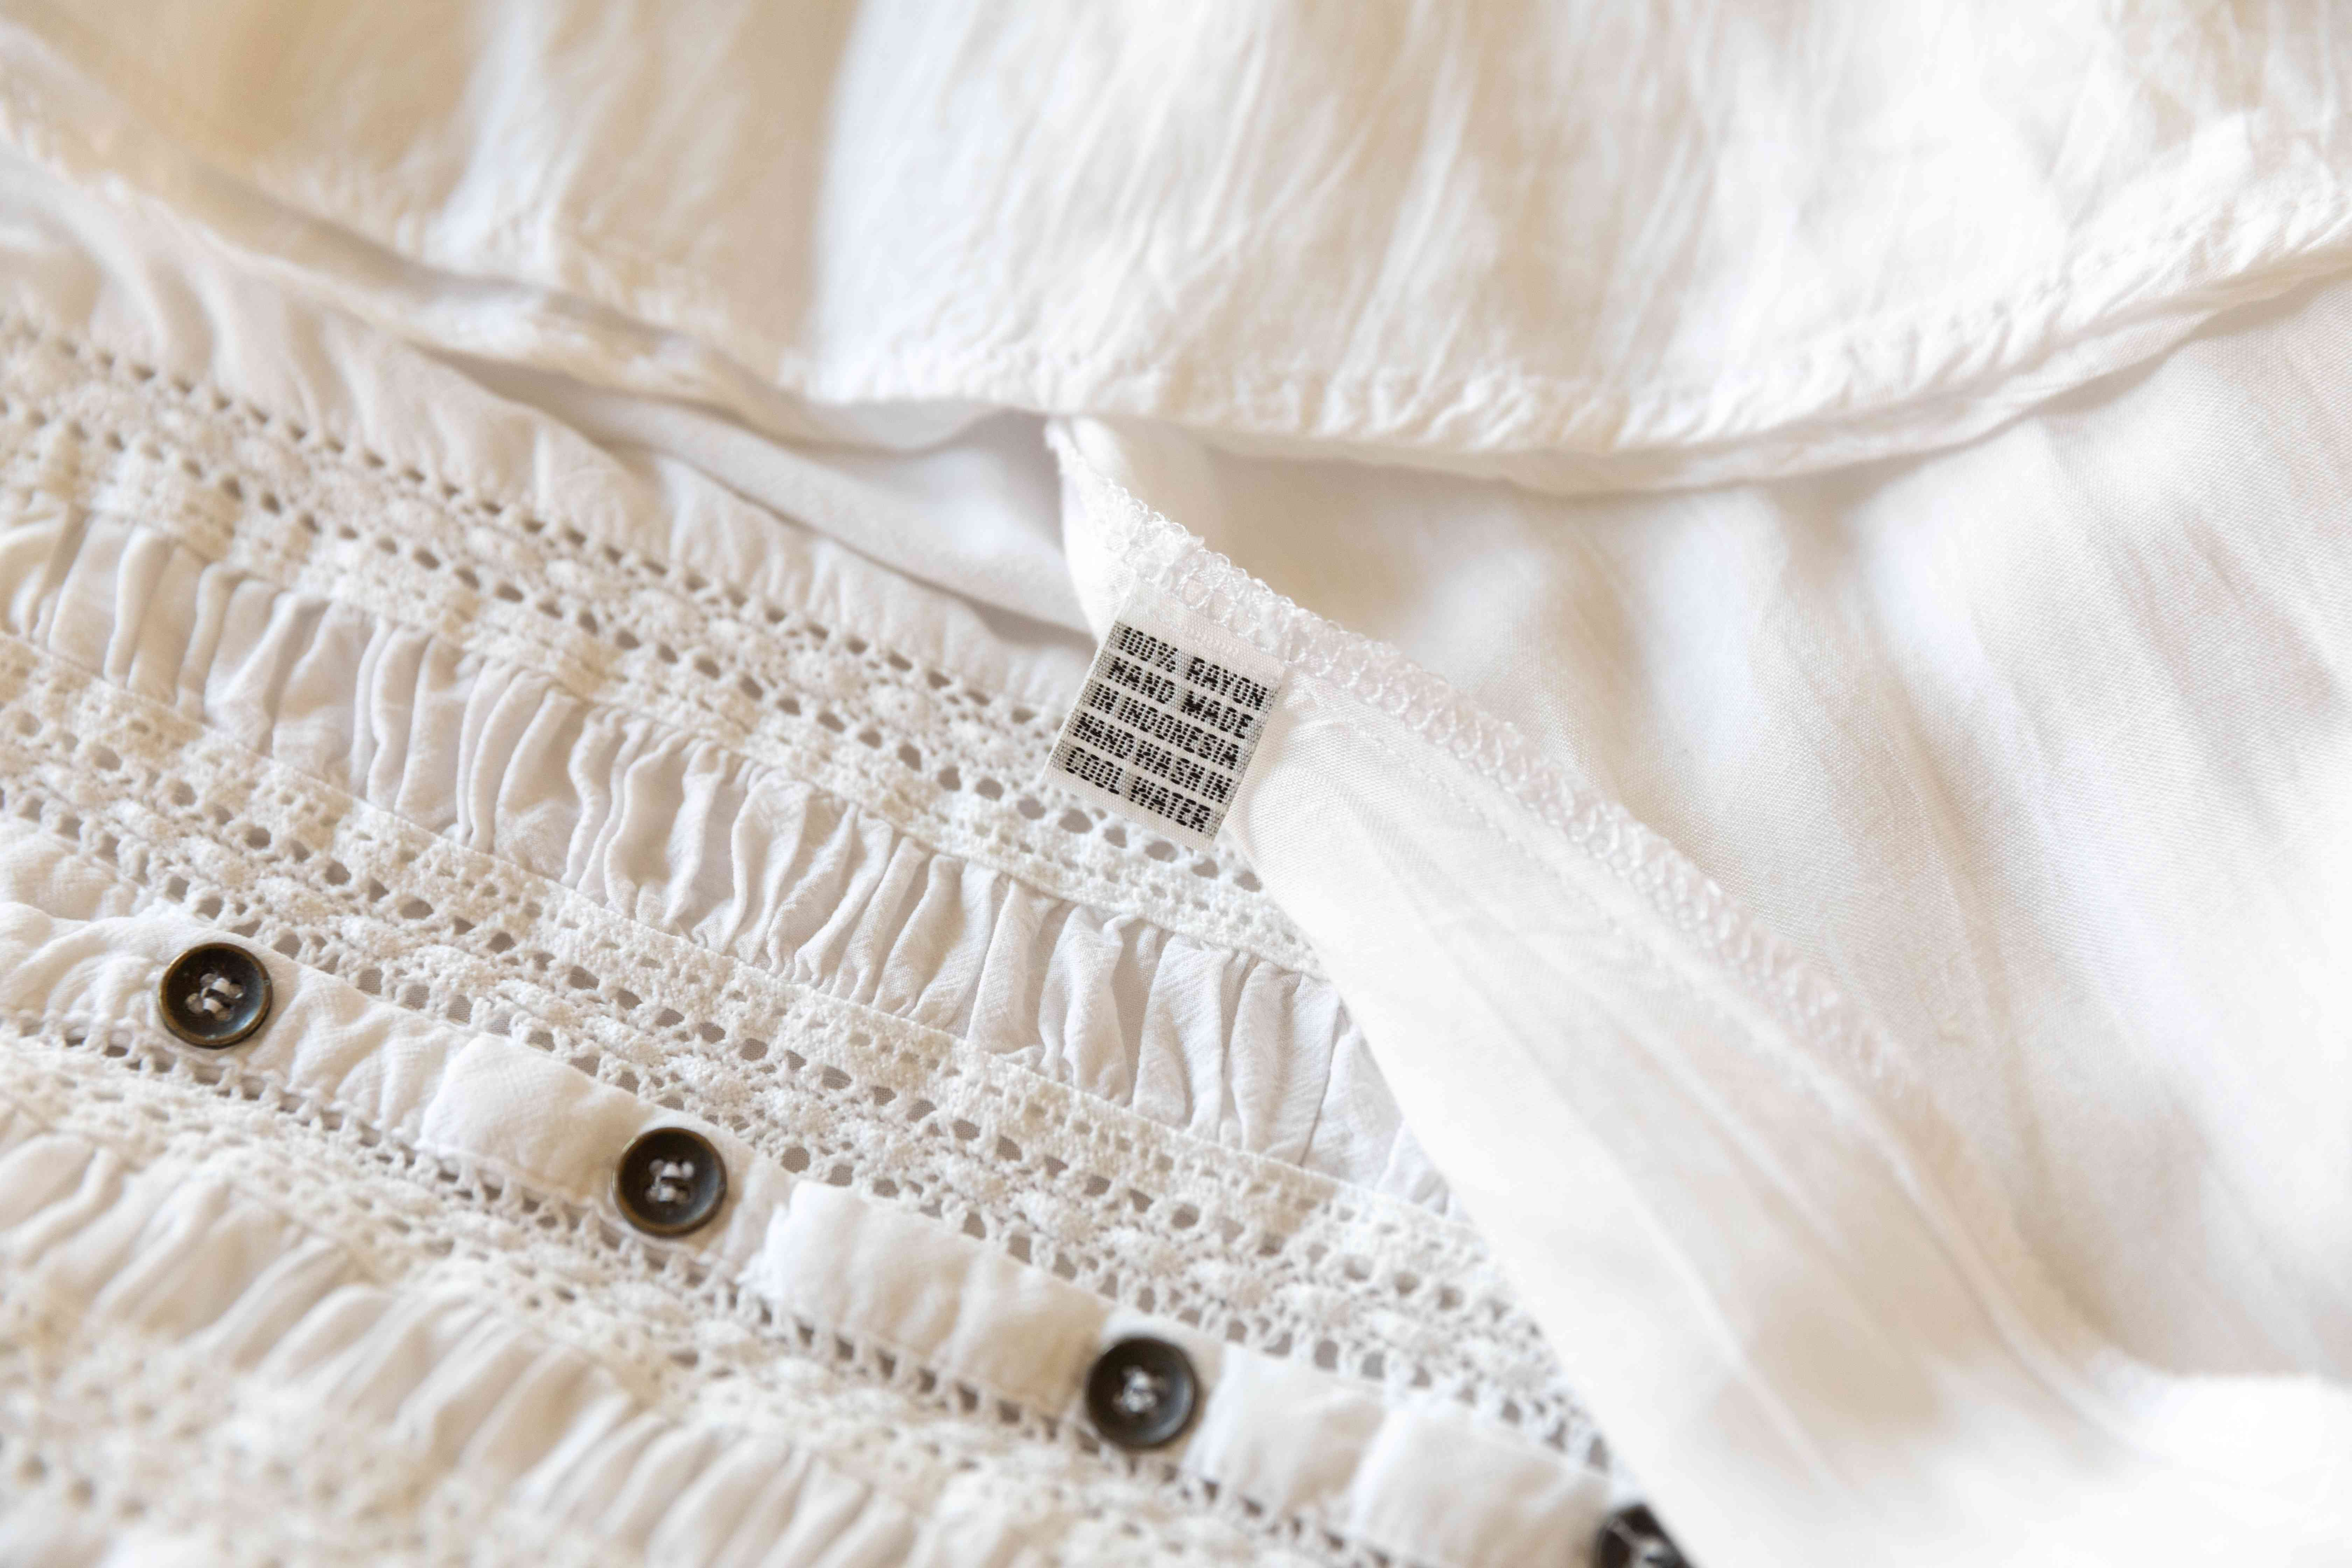 The care tag on a white rayon top